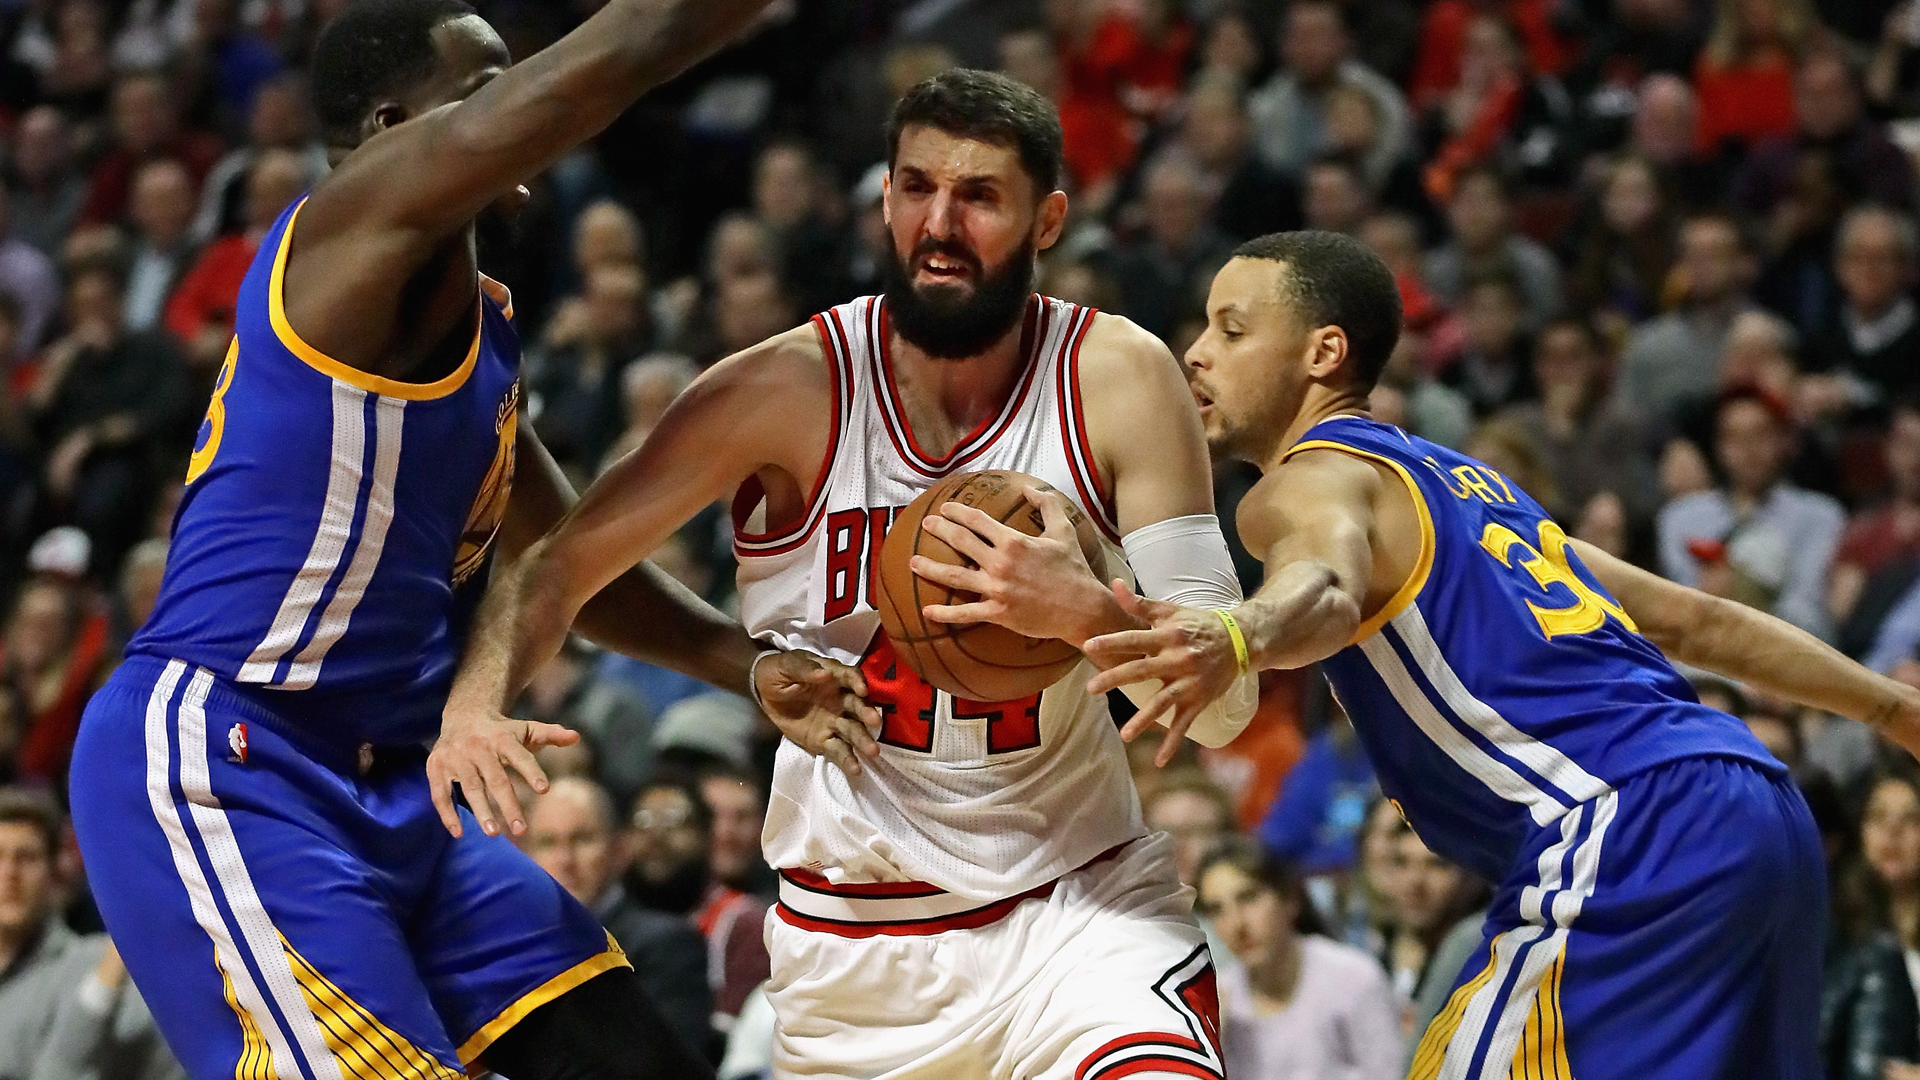 Nikola Mirotic, Bulls agree to 2-year, $27 million contract